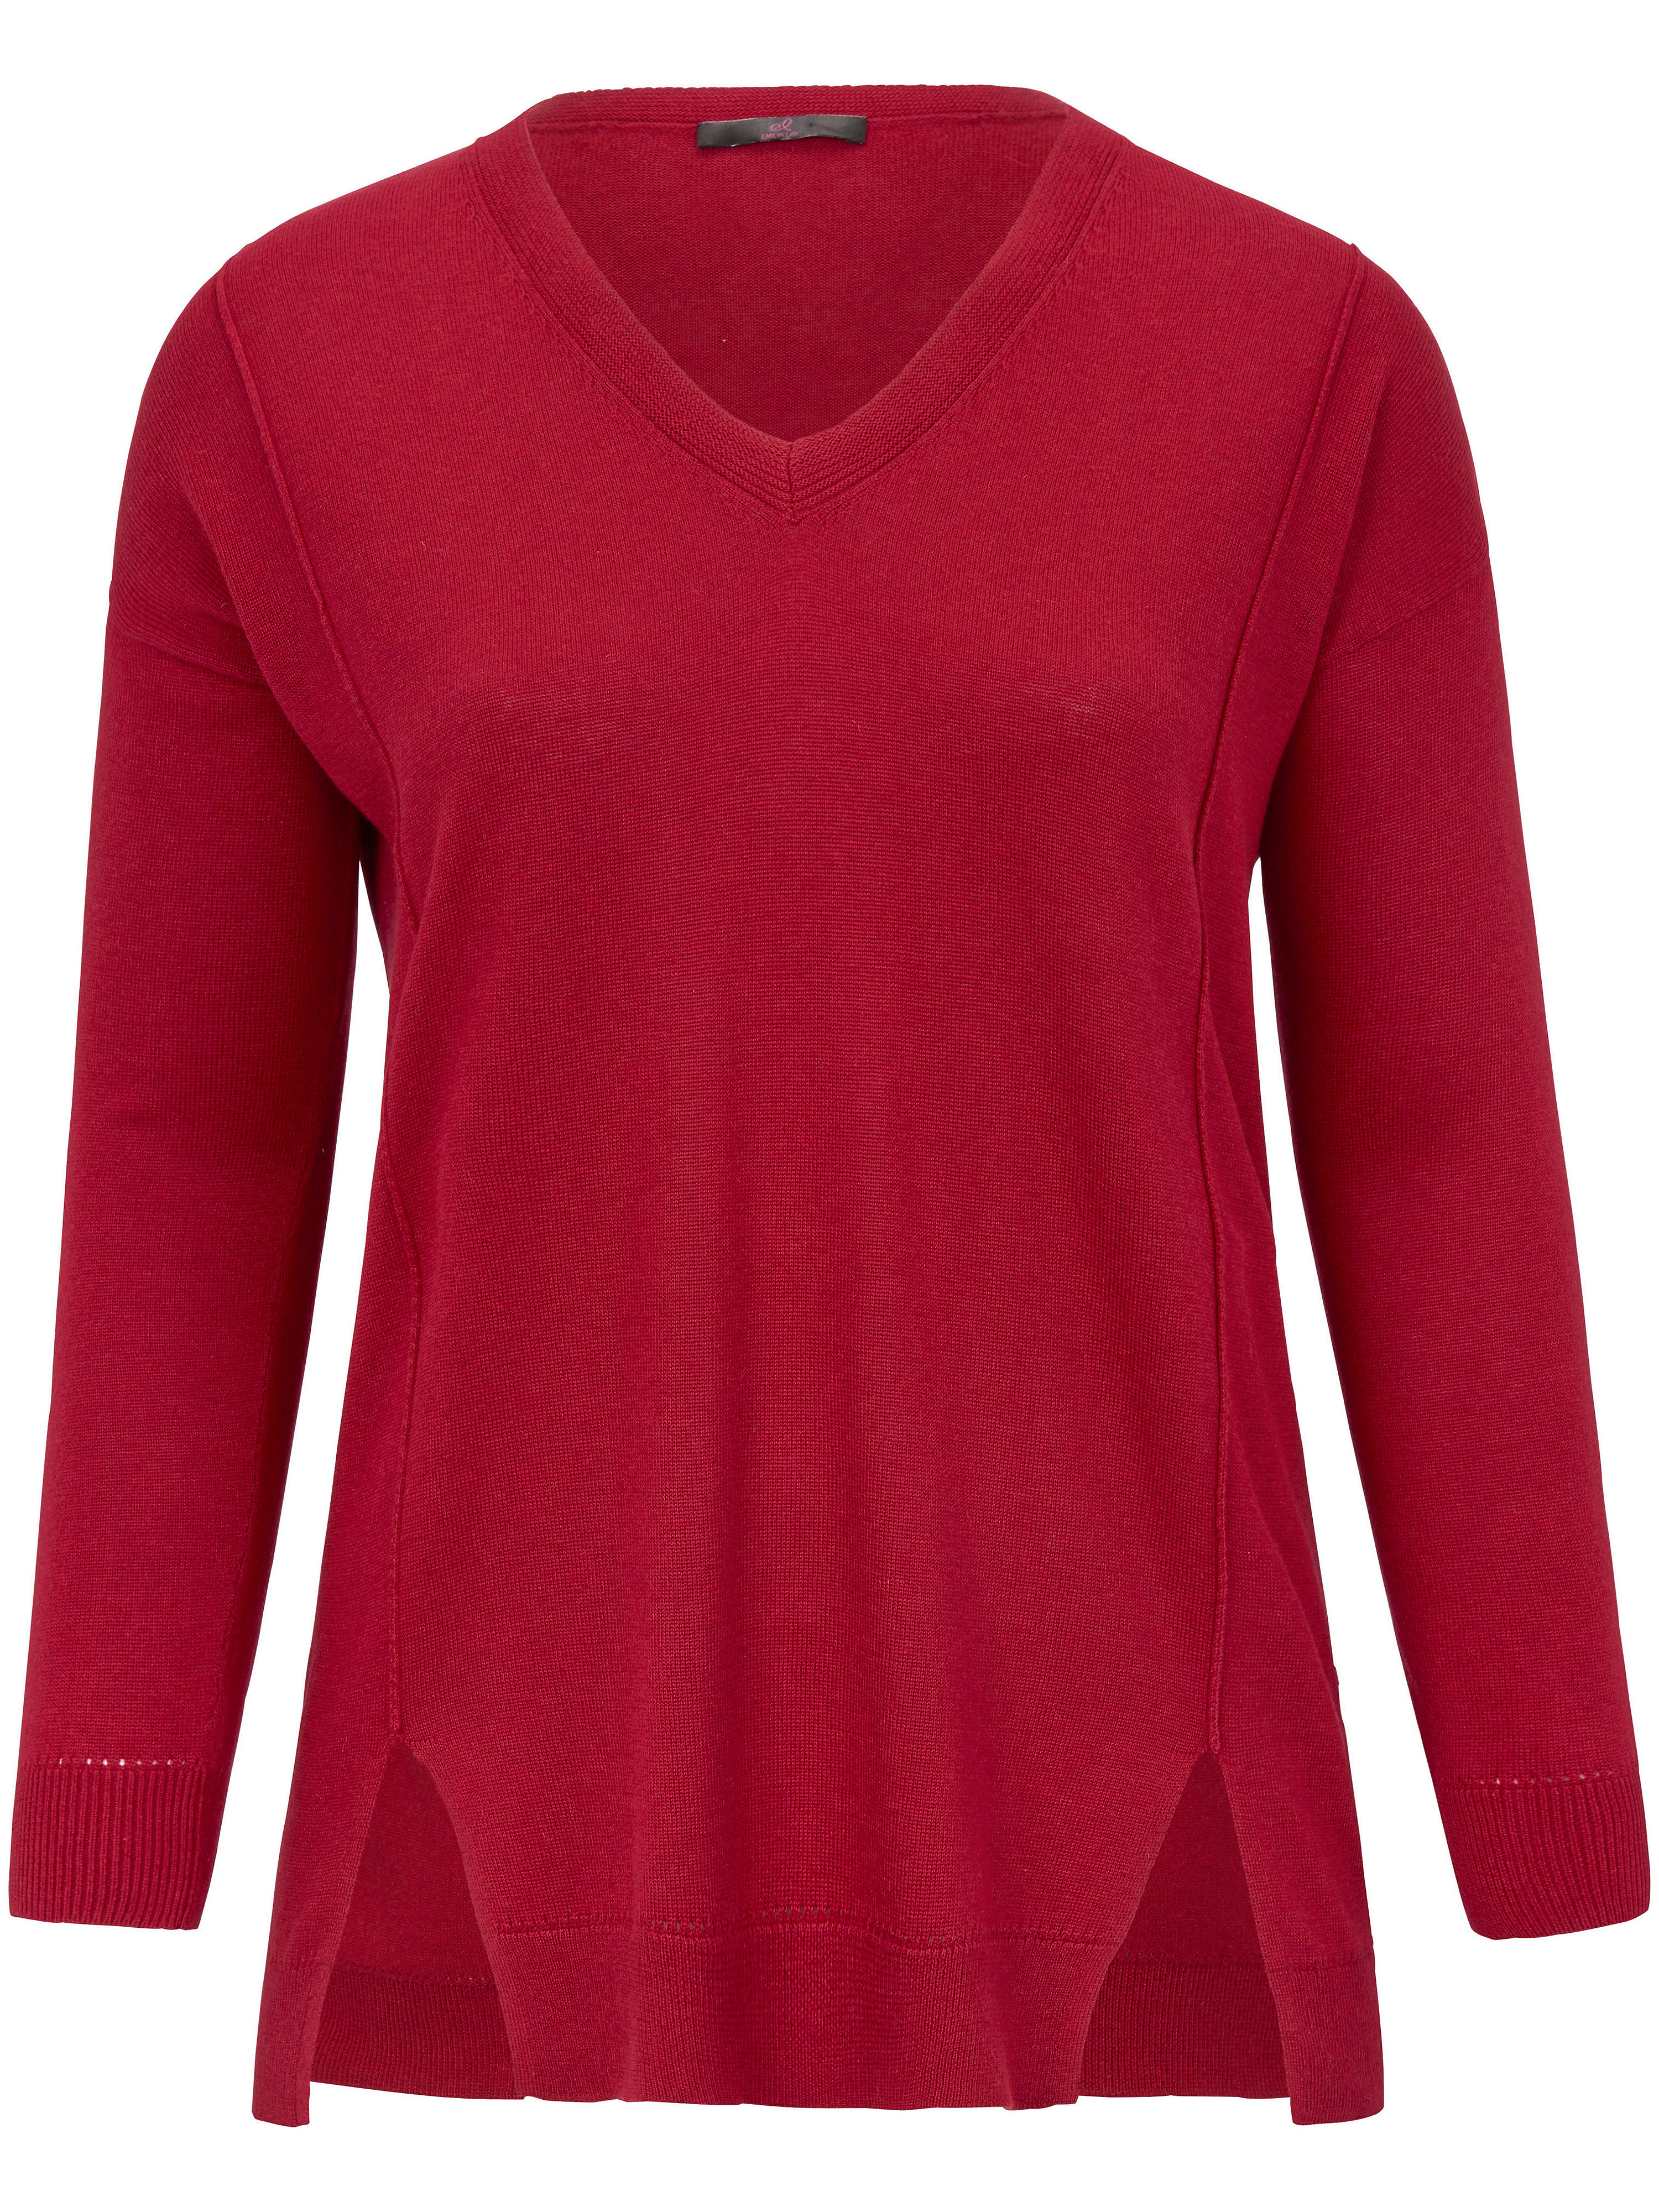 V-Pullover Emilia Lay rot | Bekleidung > Pullover > V-Pullover | Rot | Schurwolle | Emilia Lay